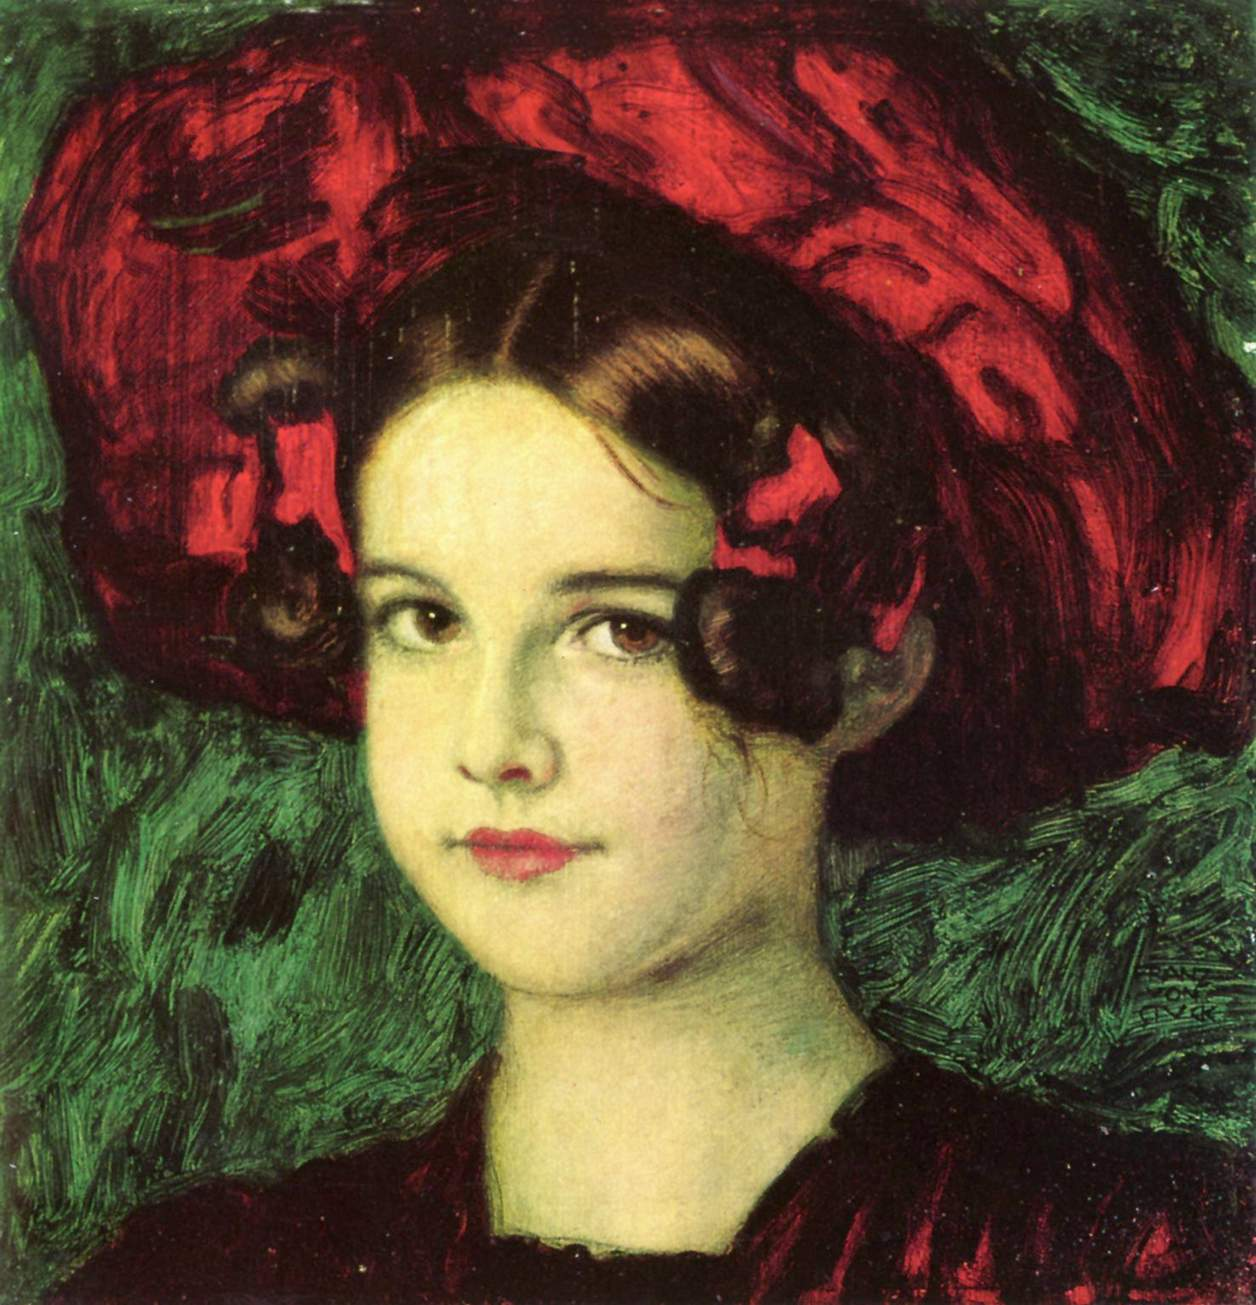 Mary with a red hat - Франц фон Штук